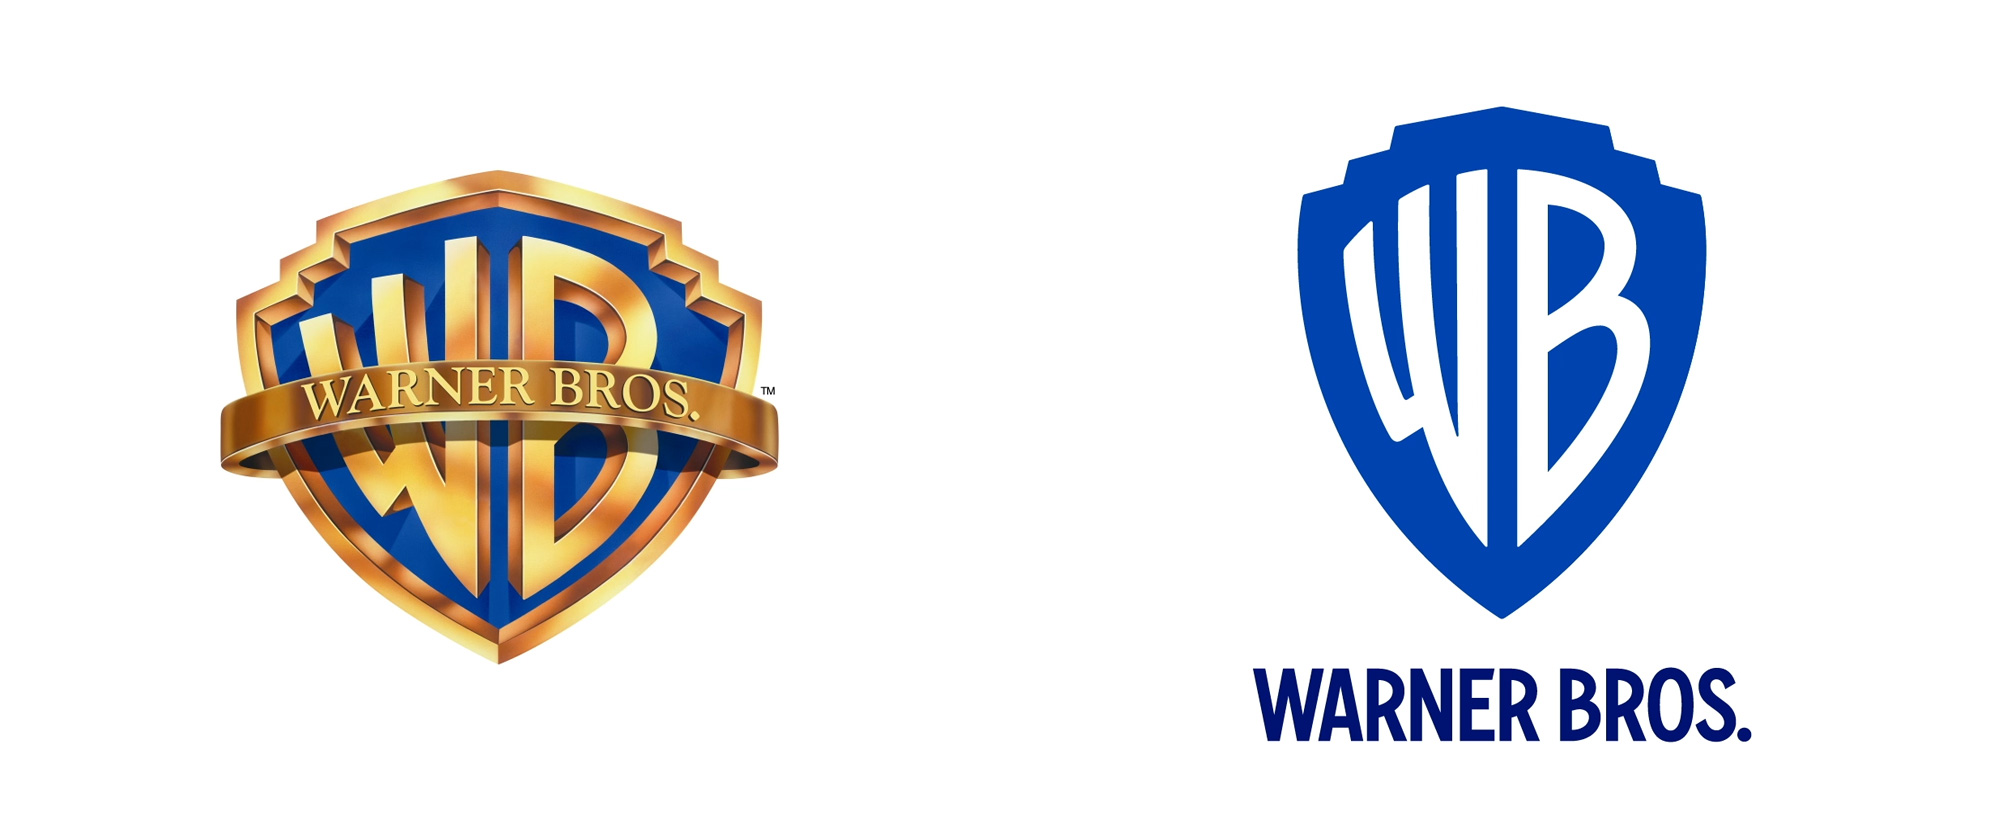 Logo before and after. Credit: Warner Bros.